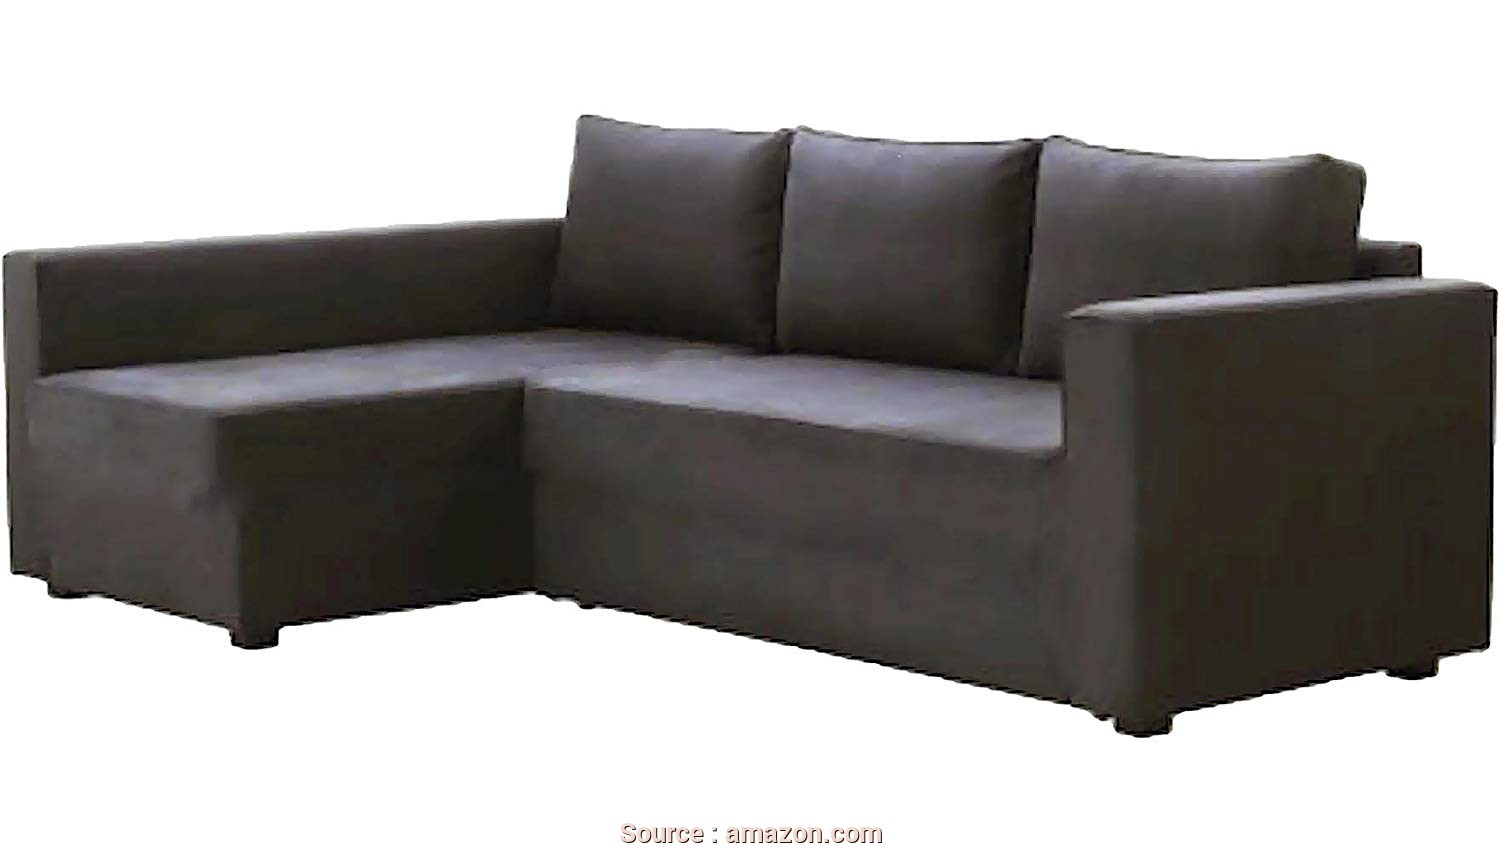 Letto Futon Ikea, A Buon Mercato HomeTown Market, Dark Gray Manstad Cover Replacement Is Custom Made, IKEA Manstad Sofa Bed, Or Sectional, Or Corner Slipcover. Sofa Cover Only!.